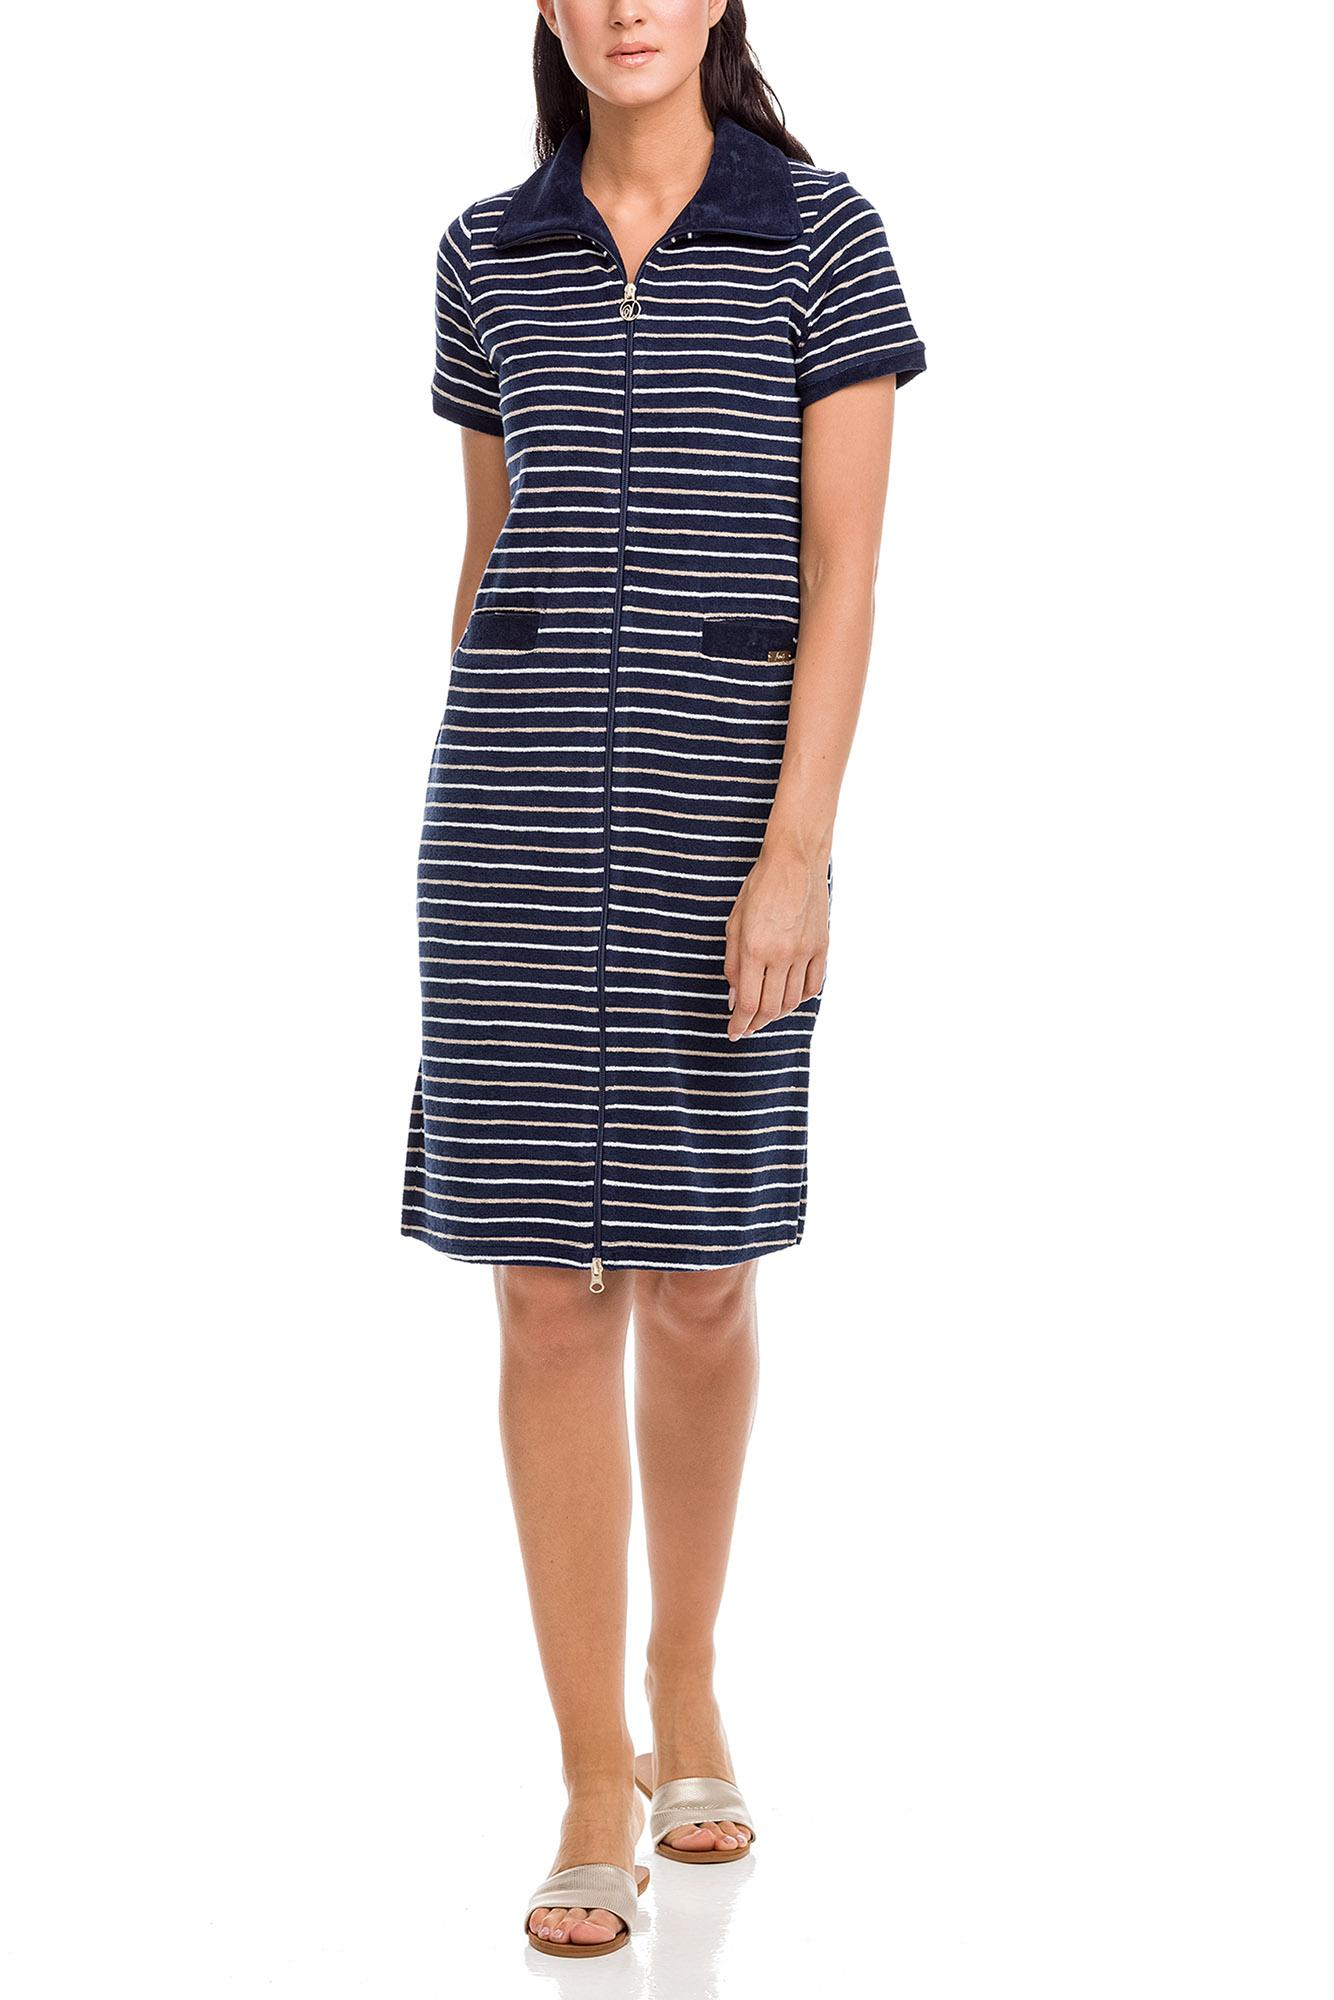 Zipped Frottee Striped Dress Plus Size